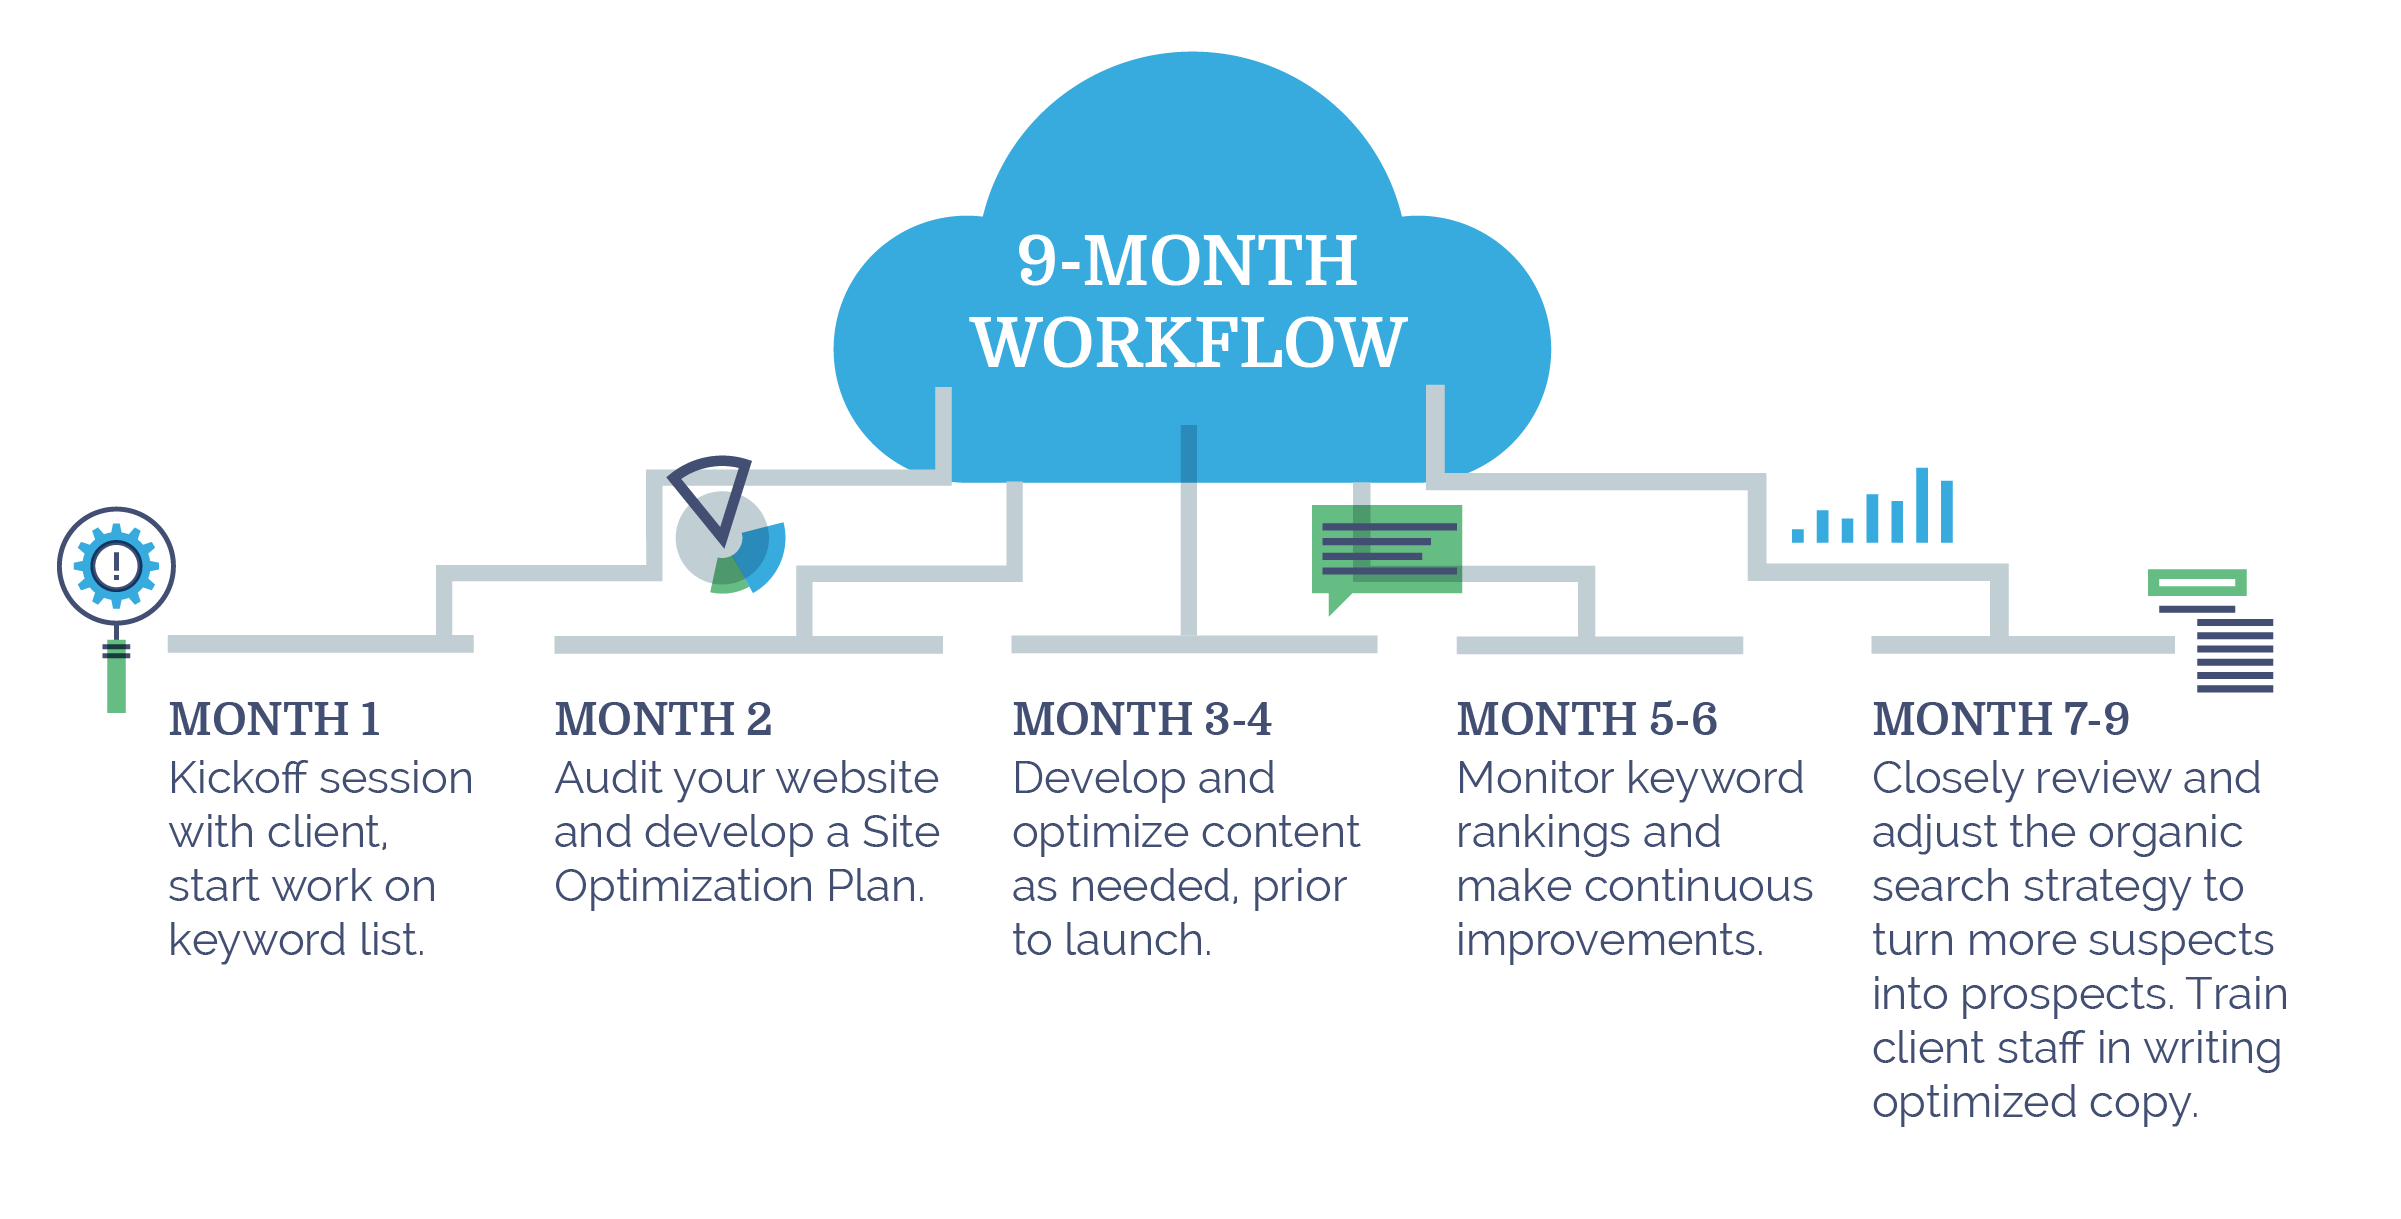 Image: Austin SEO consultants' 9-month optimization workflow